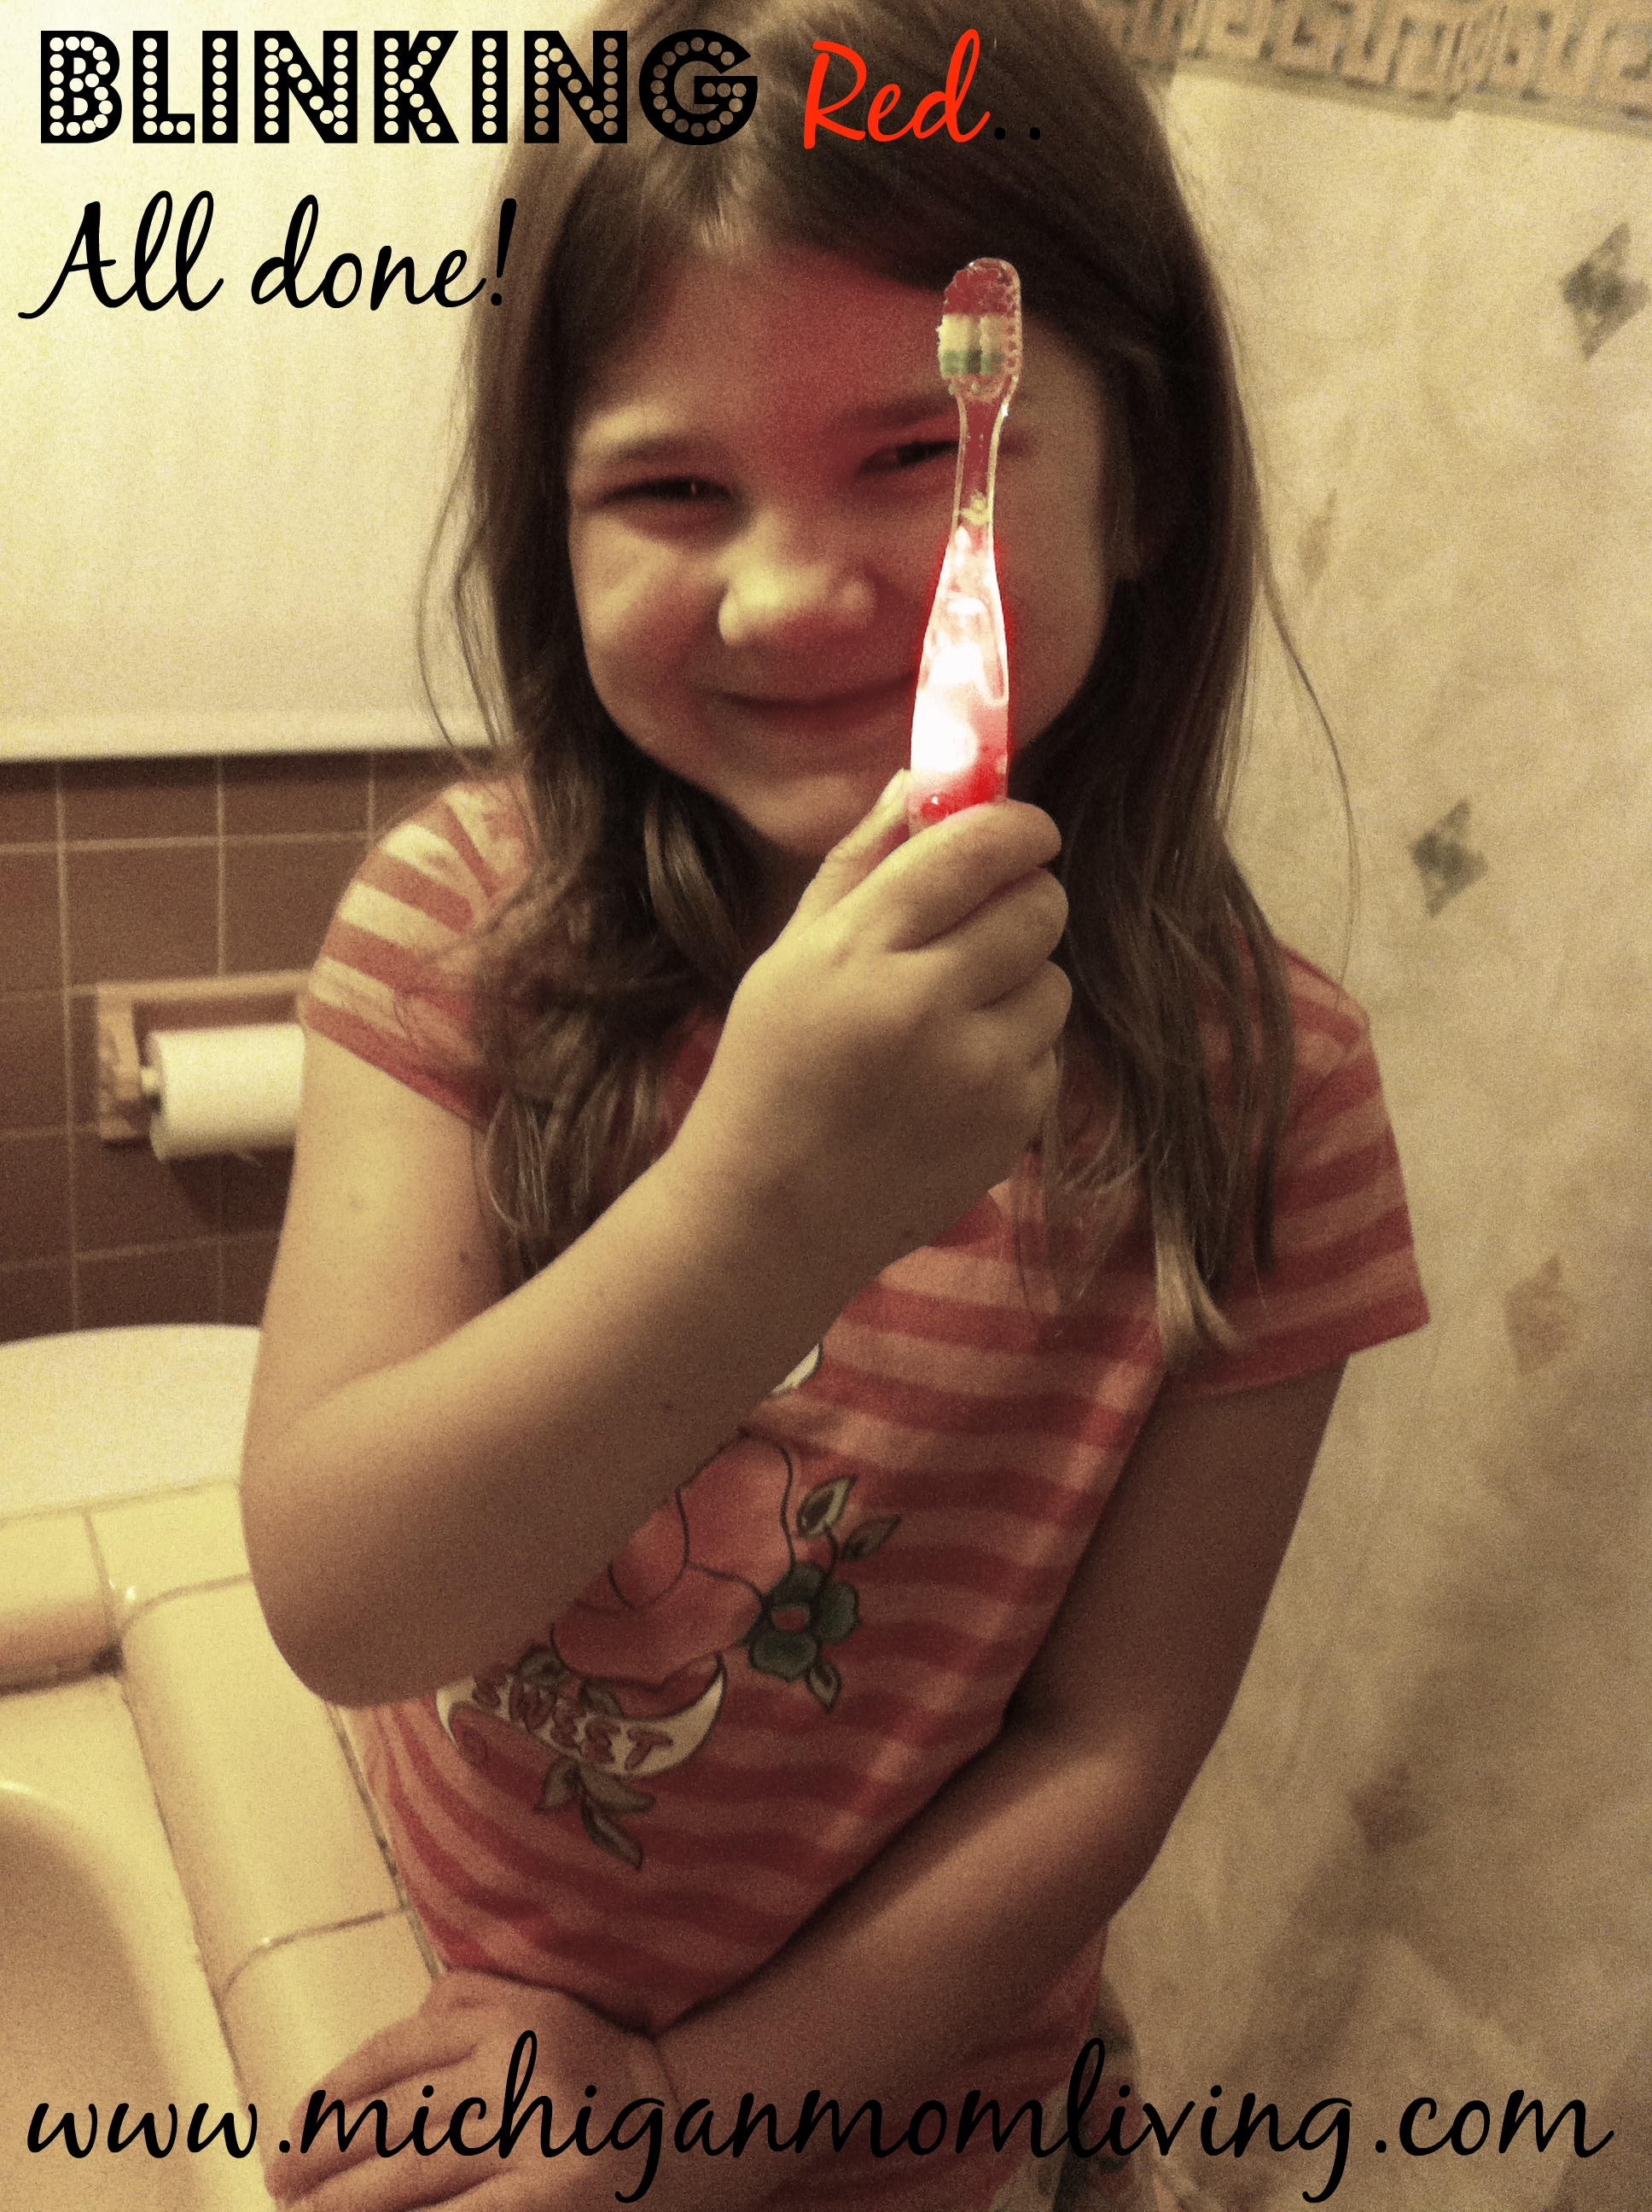 #FireFly® HelloKitty® Ready Go Toothbrush and FireFly® Hello Kitty® Anticavity Mouth Rinse {Review}